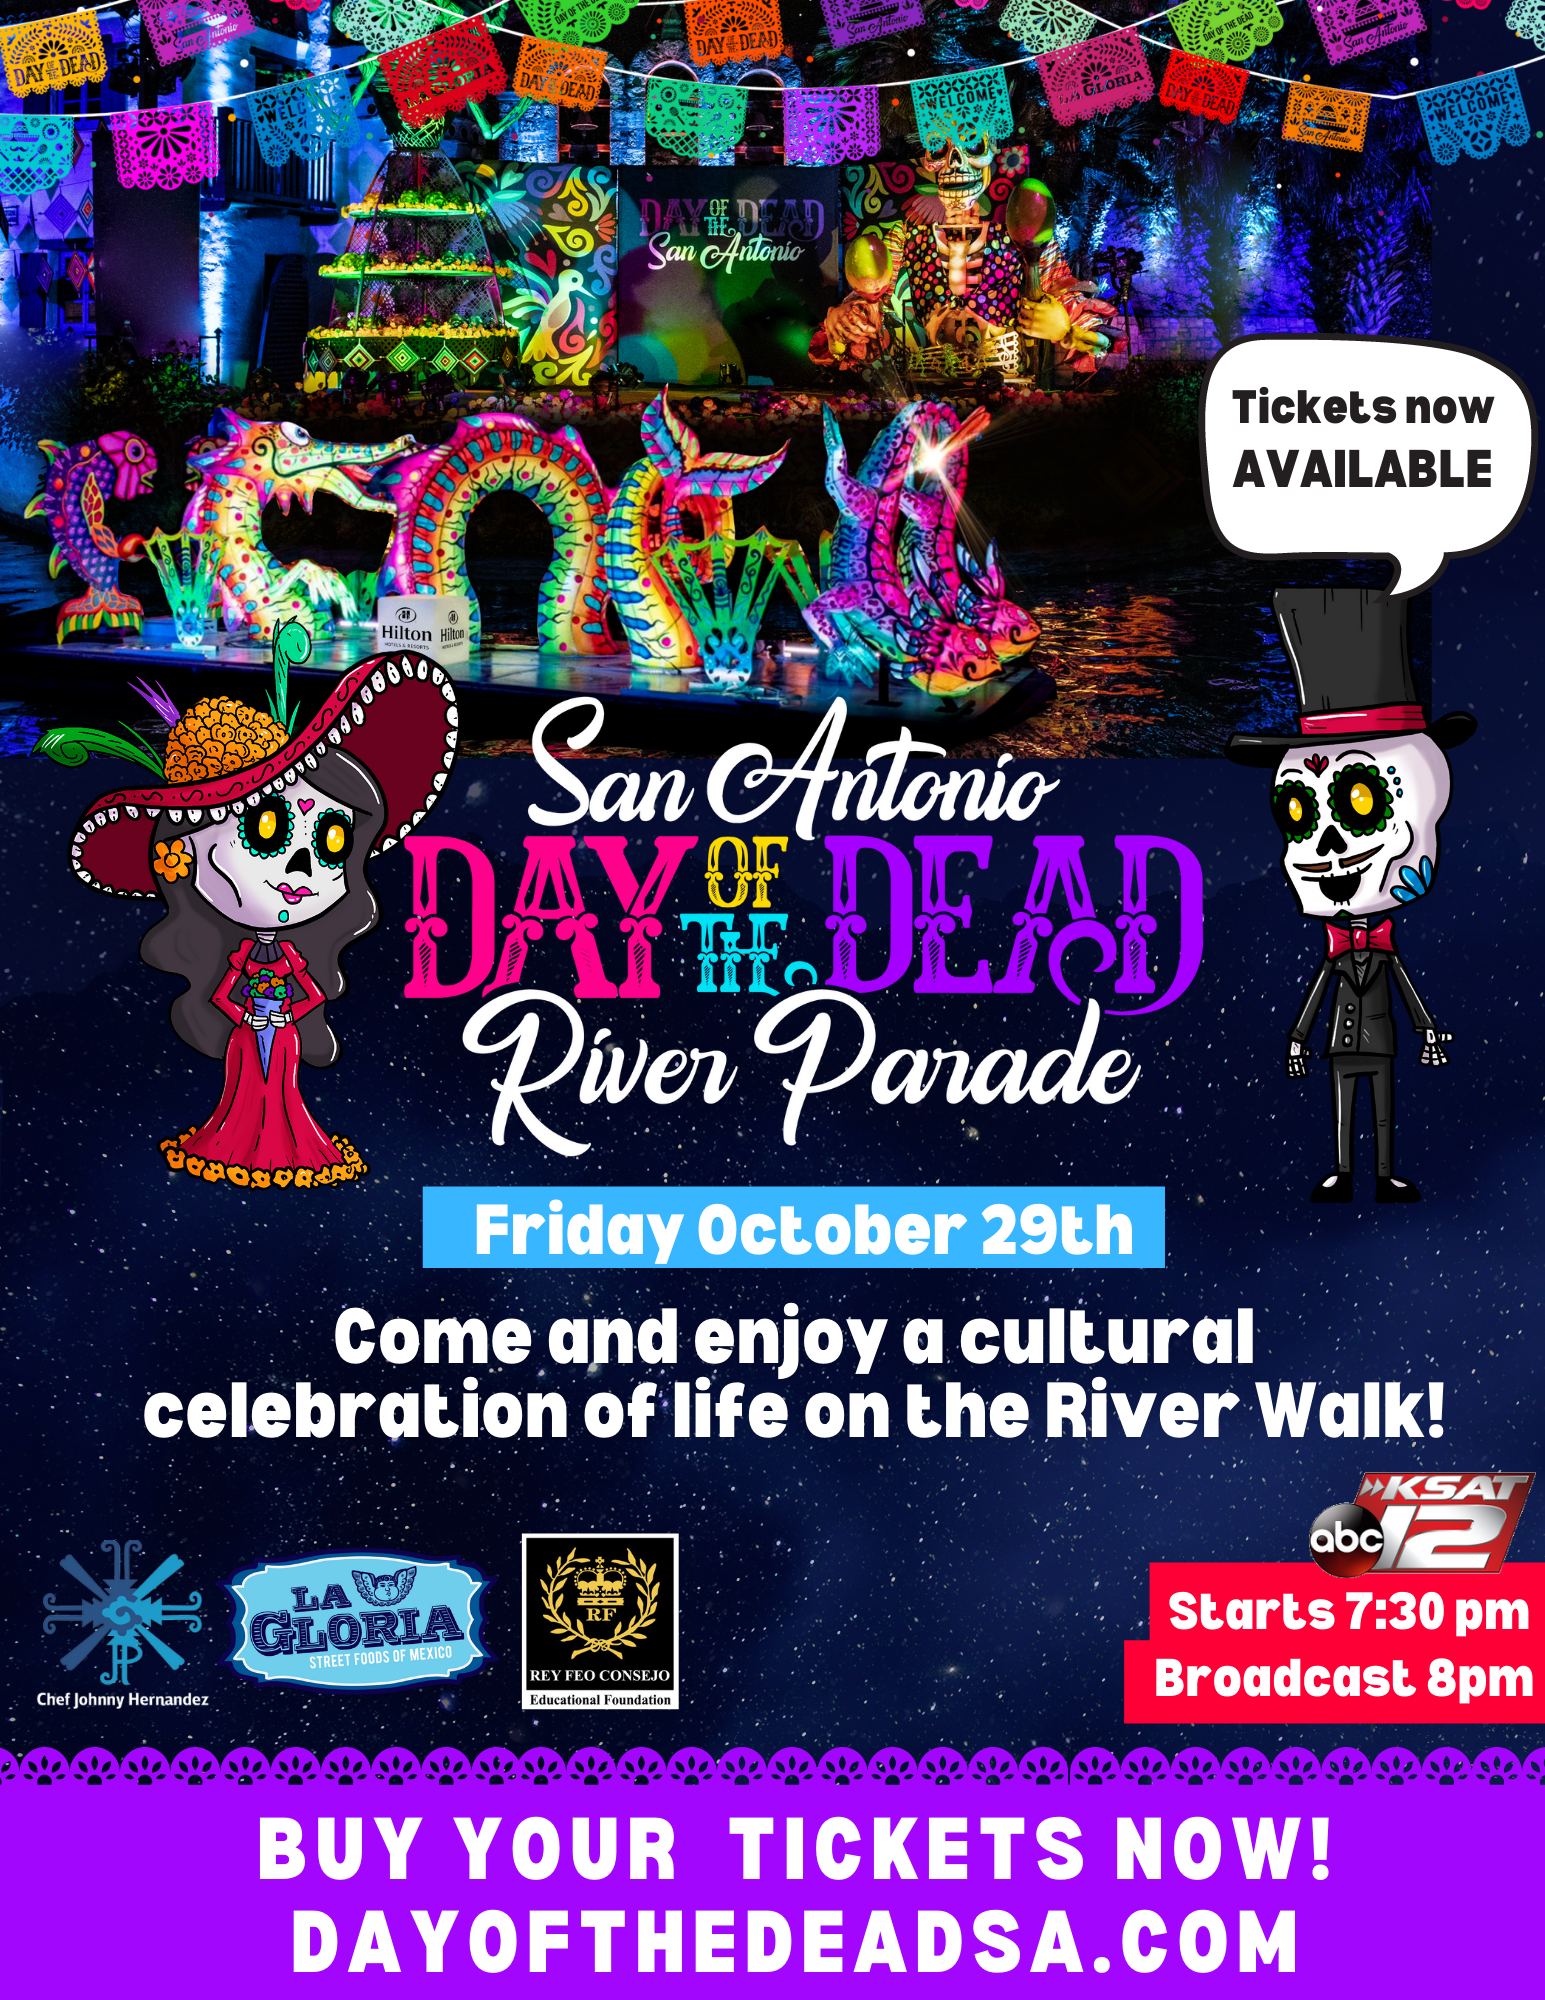 Day of the Dead Parade Ticket Sales